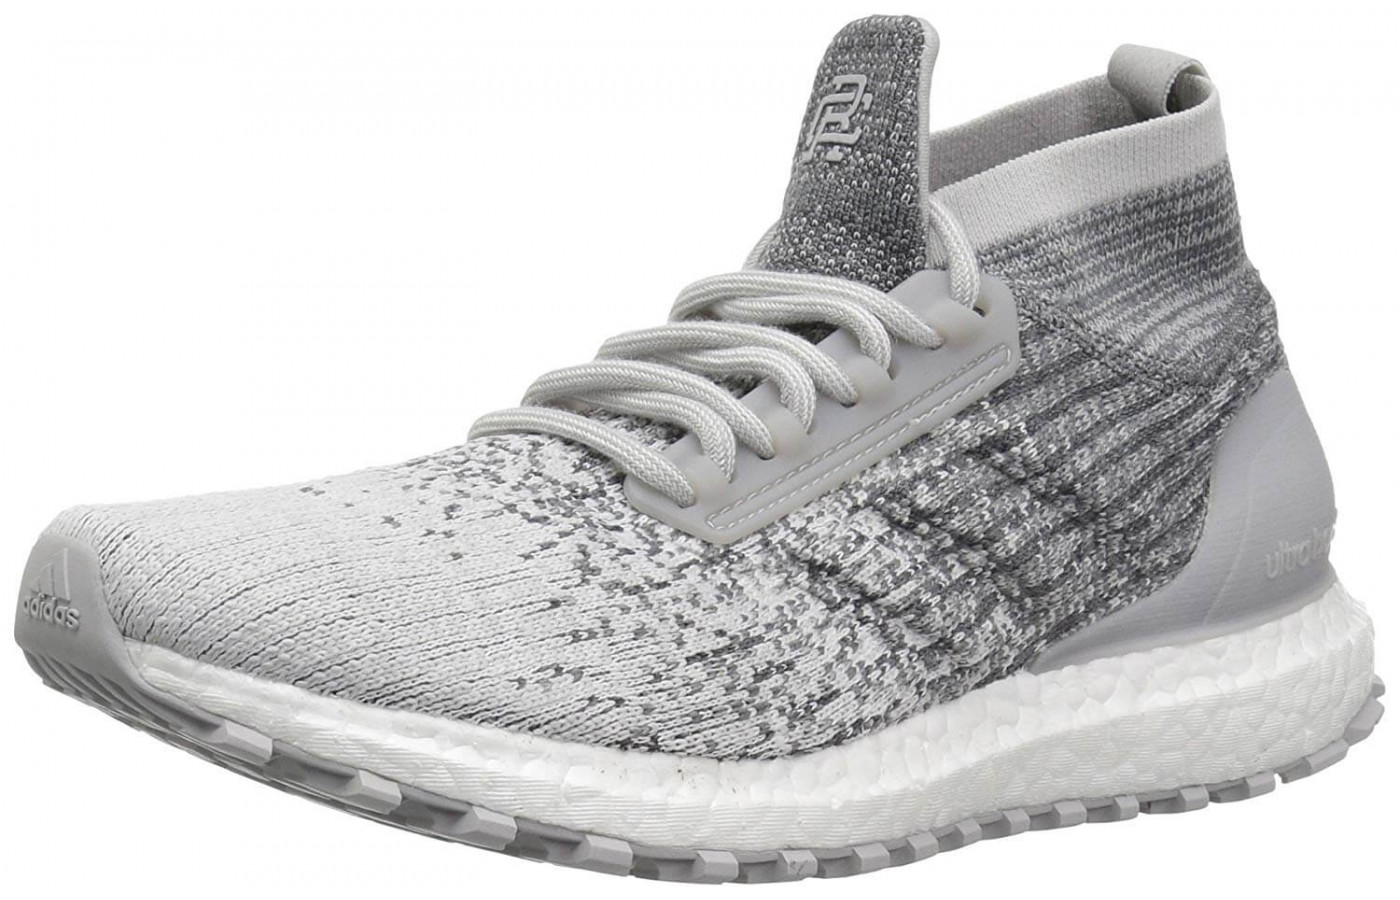 d215d9974c811 The Adidas X Reigning Champ Ultraboost are lightweight ...